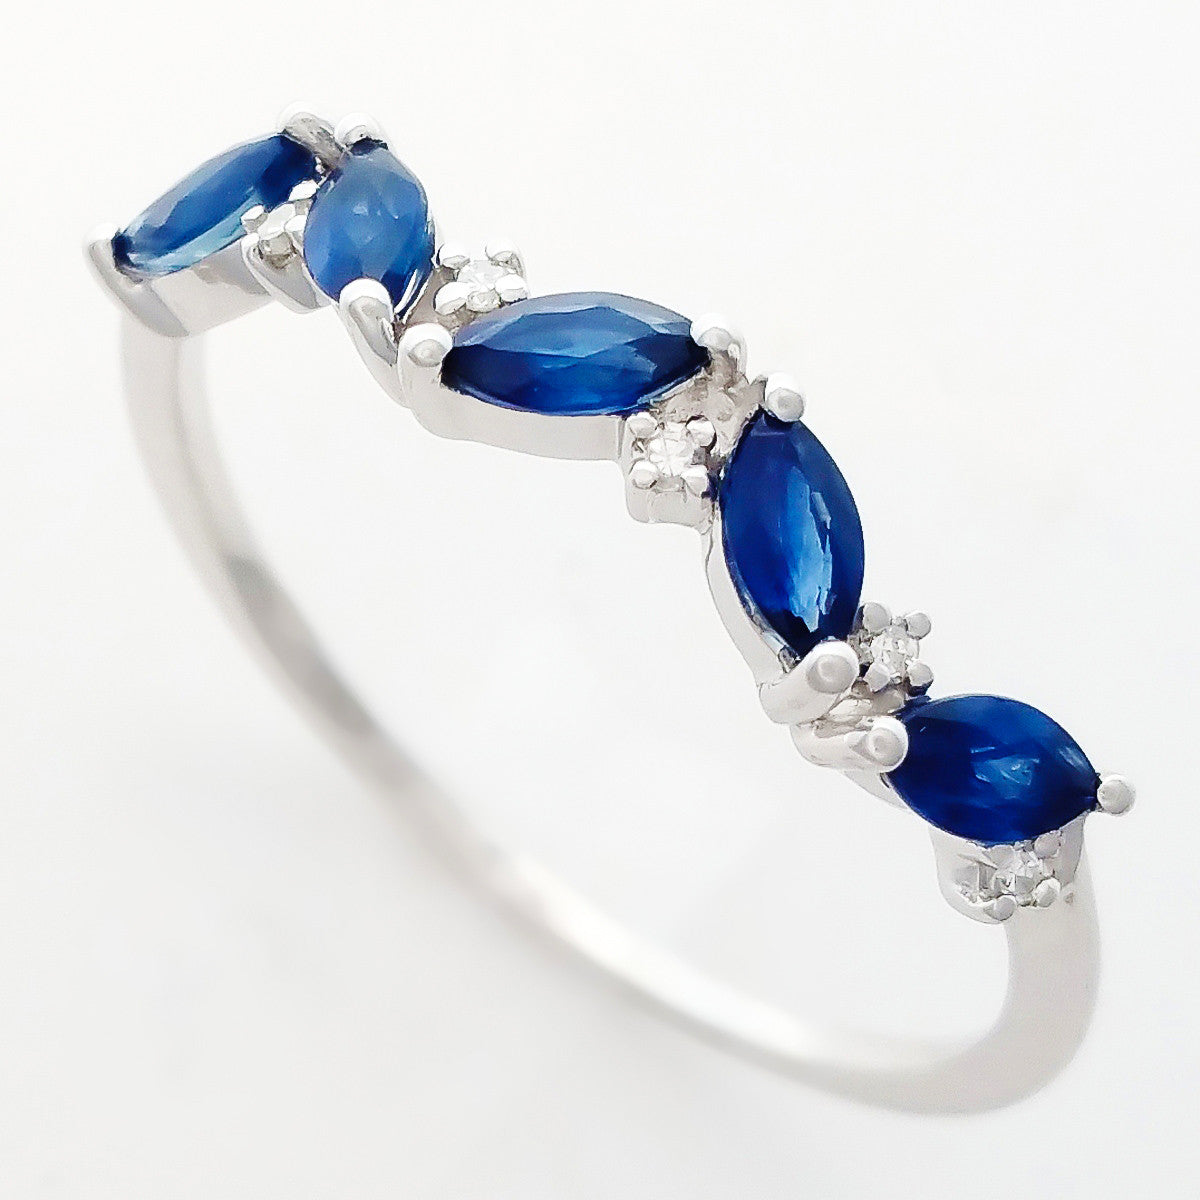 9K SOLID WHITE GOLD 0.60CT NATURAL MARQUISE BLUE SAPPHIRE RING WITH 6 DIAMONDS.